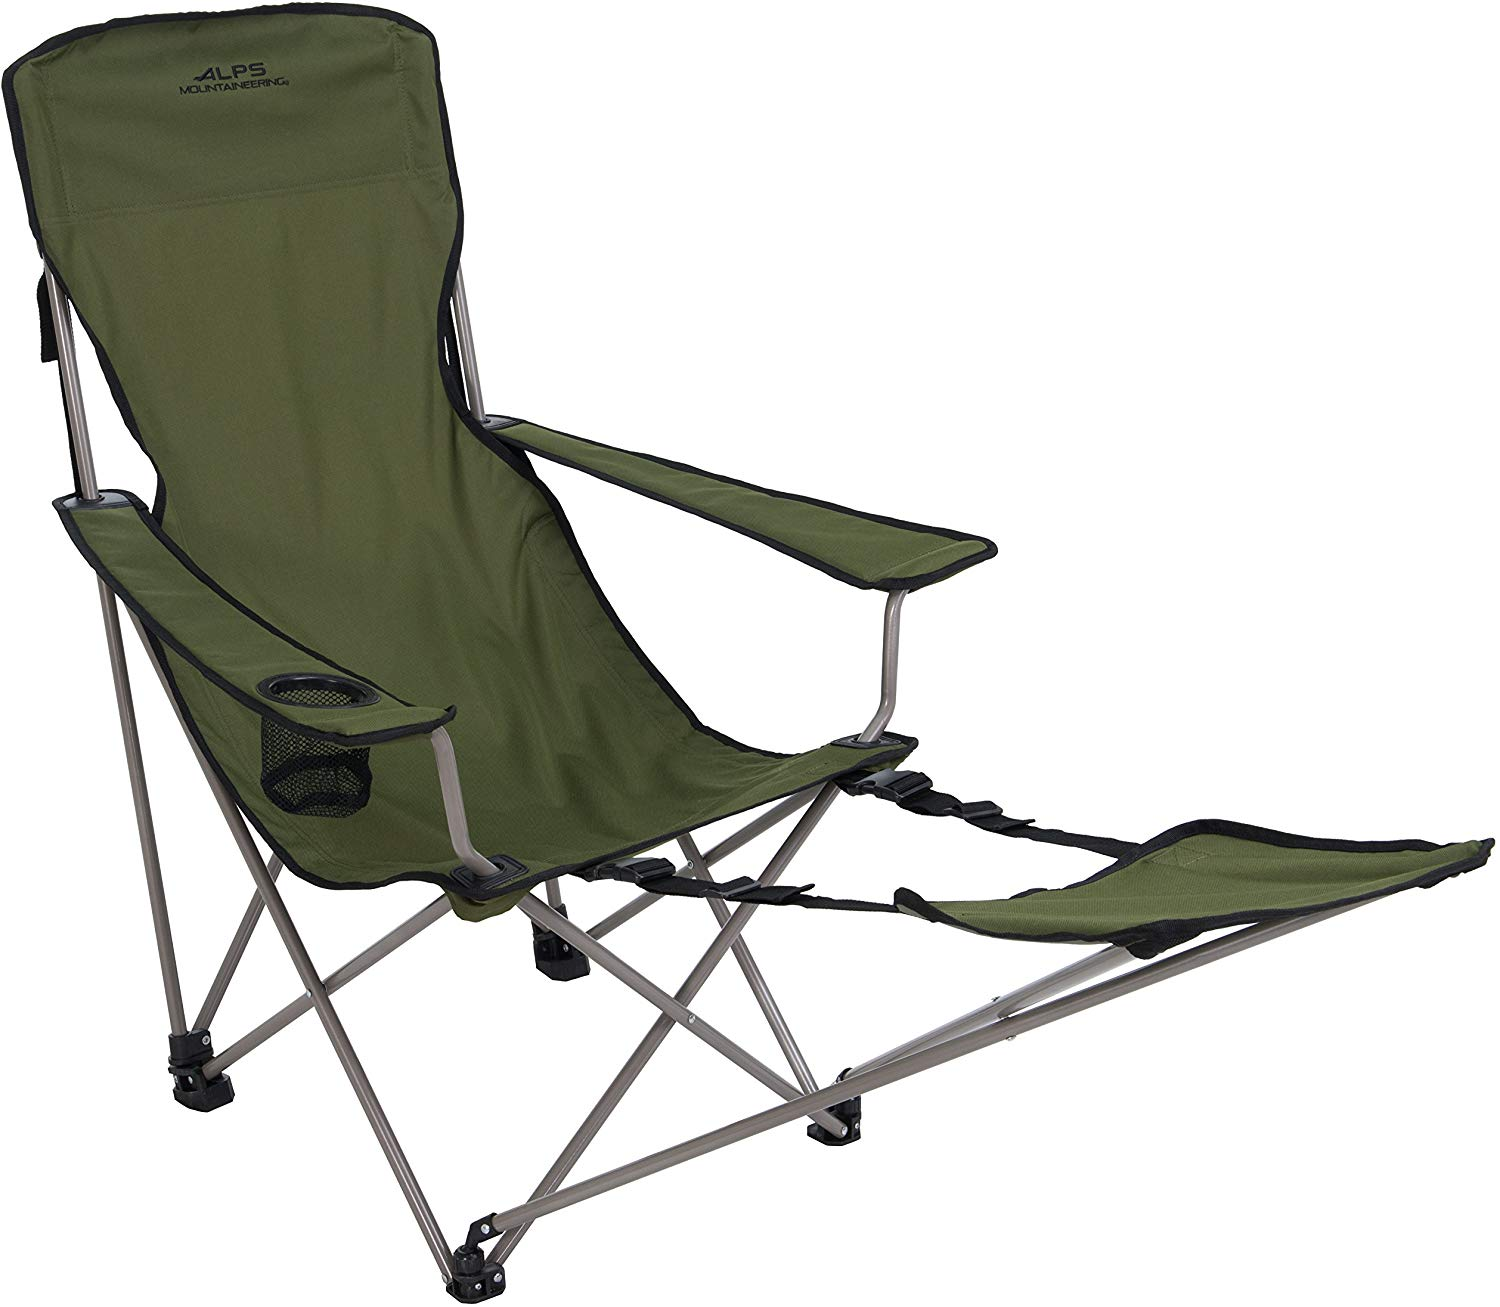 Top 10 Best Reclining Camping Chairs 2021 Reviews 7